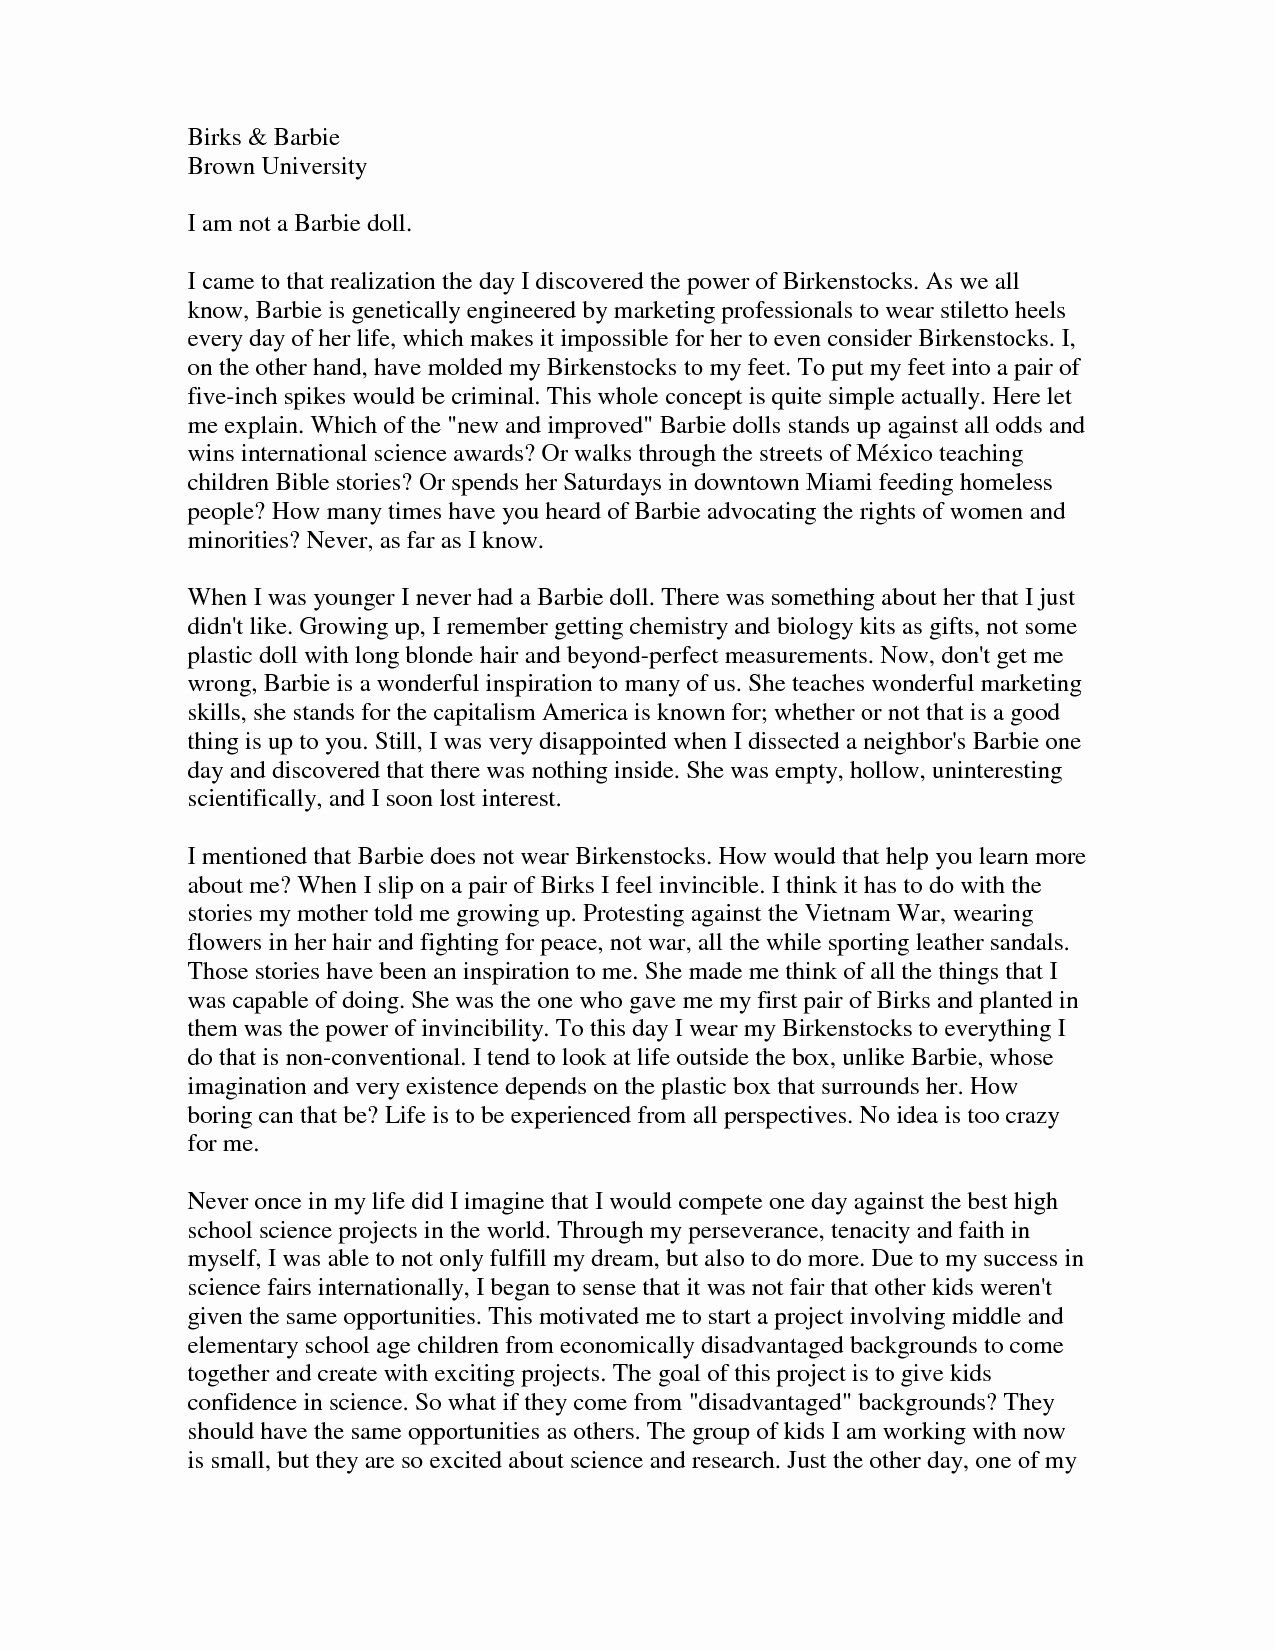 Full Size of Proper Format For College Application Essay